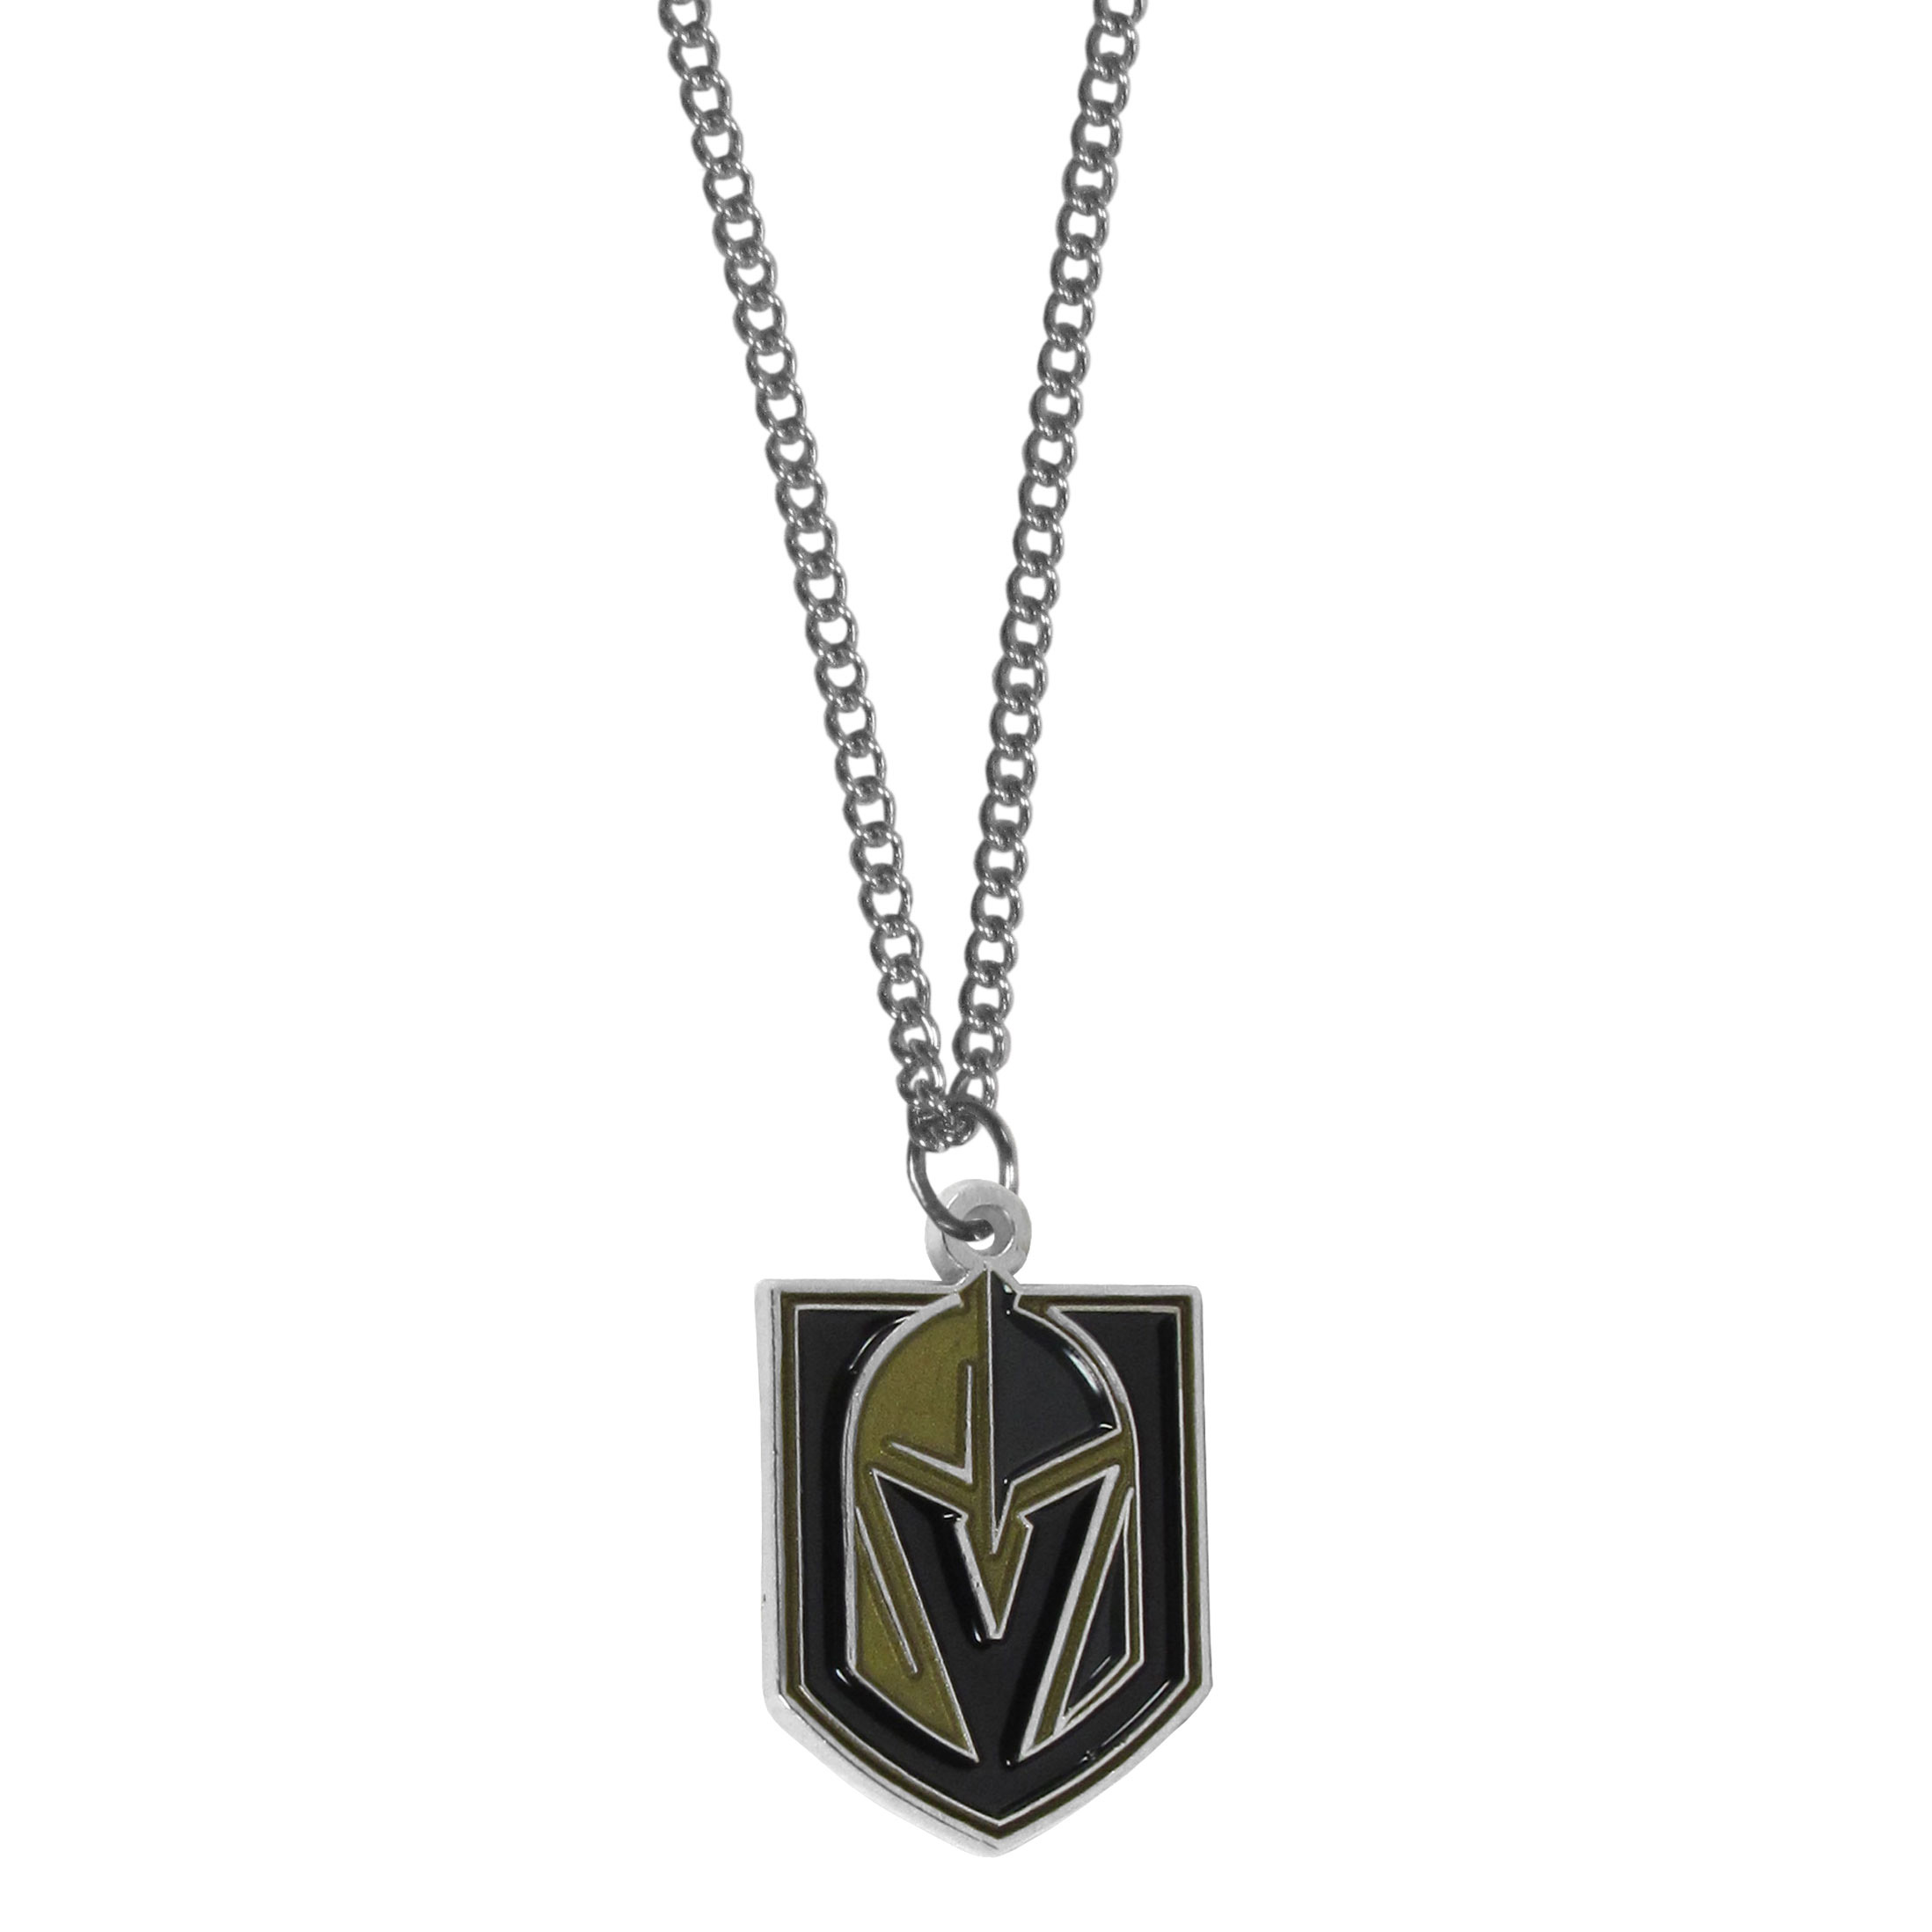 Las Vegas Golden Knights® Chain Necklace with Small Charm - Make a statement with our collegiate chain necklaces. The 22 inch chain features a fully cast, high polish Las Vegas Golden Knights® pendant with vivid enameled details. Perfect accessory for game day and nice enough to wear everyday!